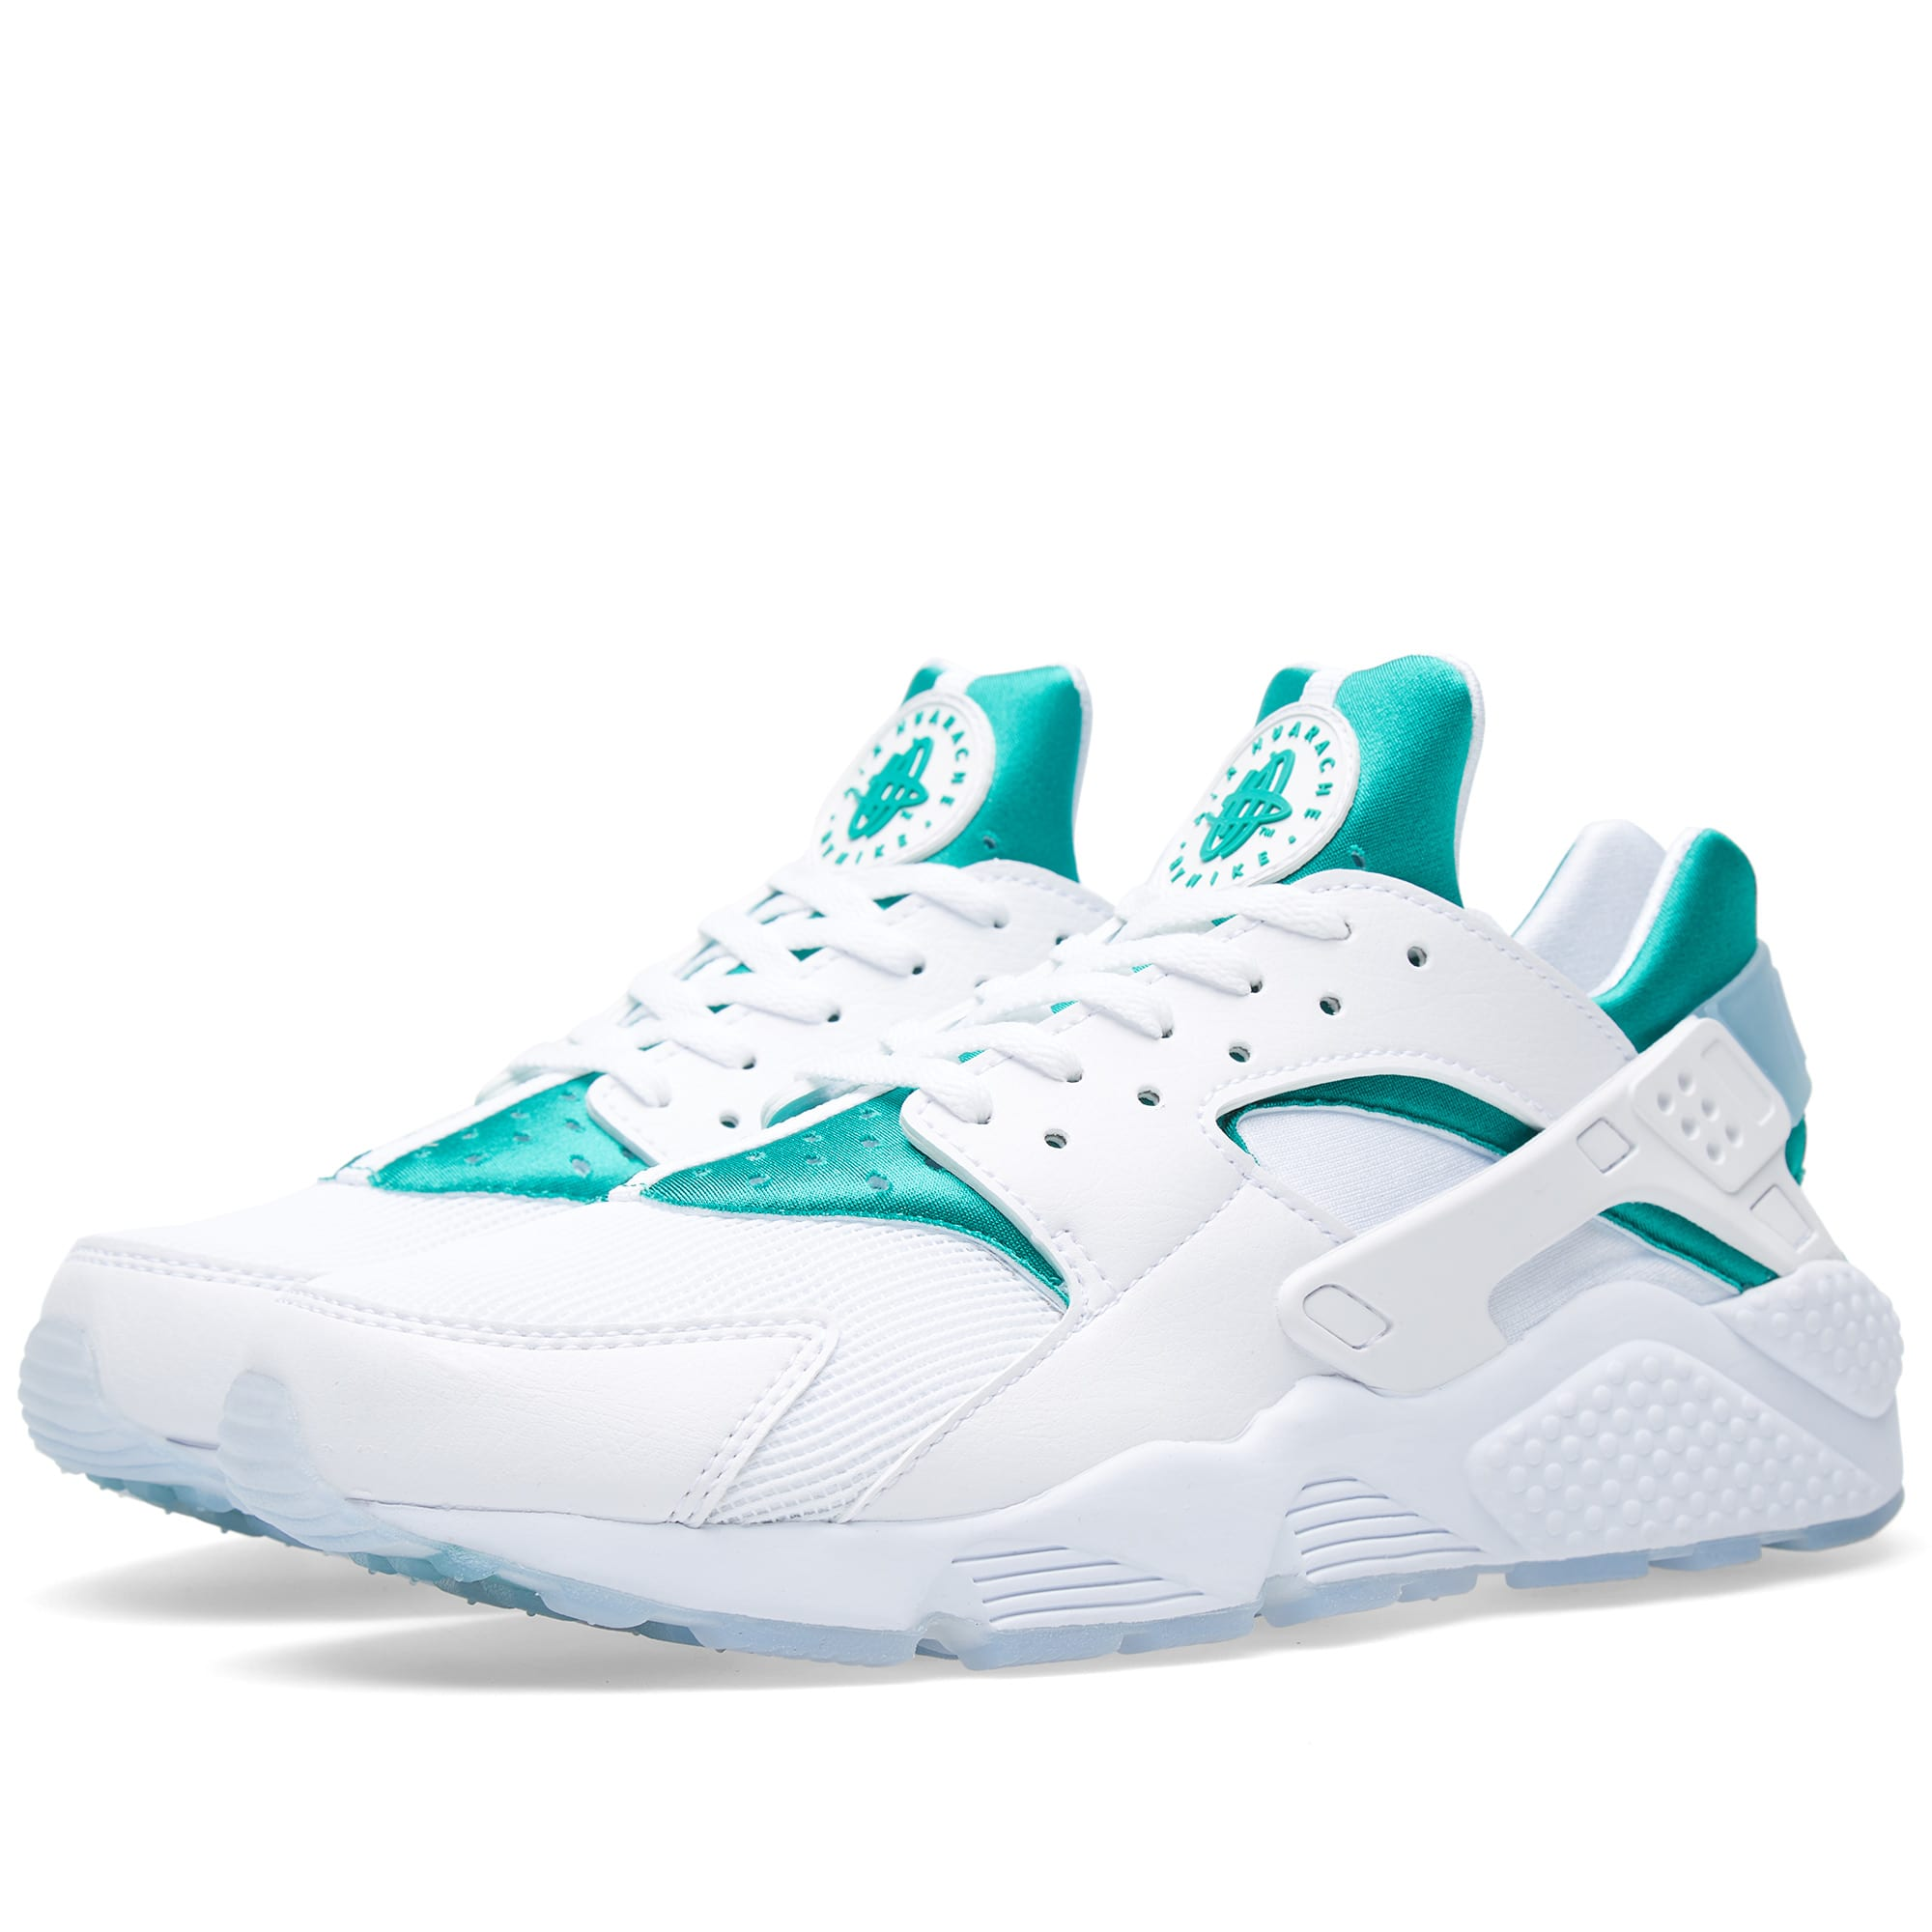 super popular e35e6 3378b Nike Air Huarache Run  Paris  White   Emerald Green   END.